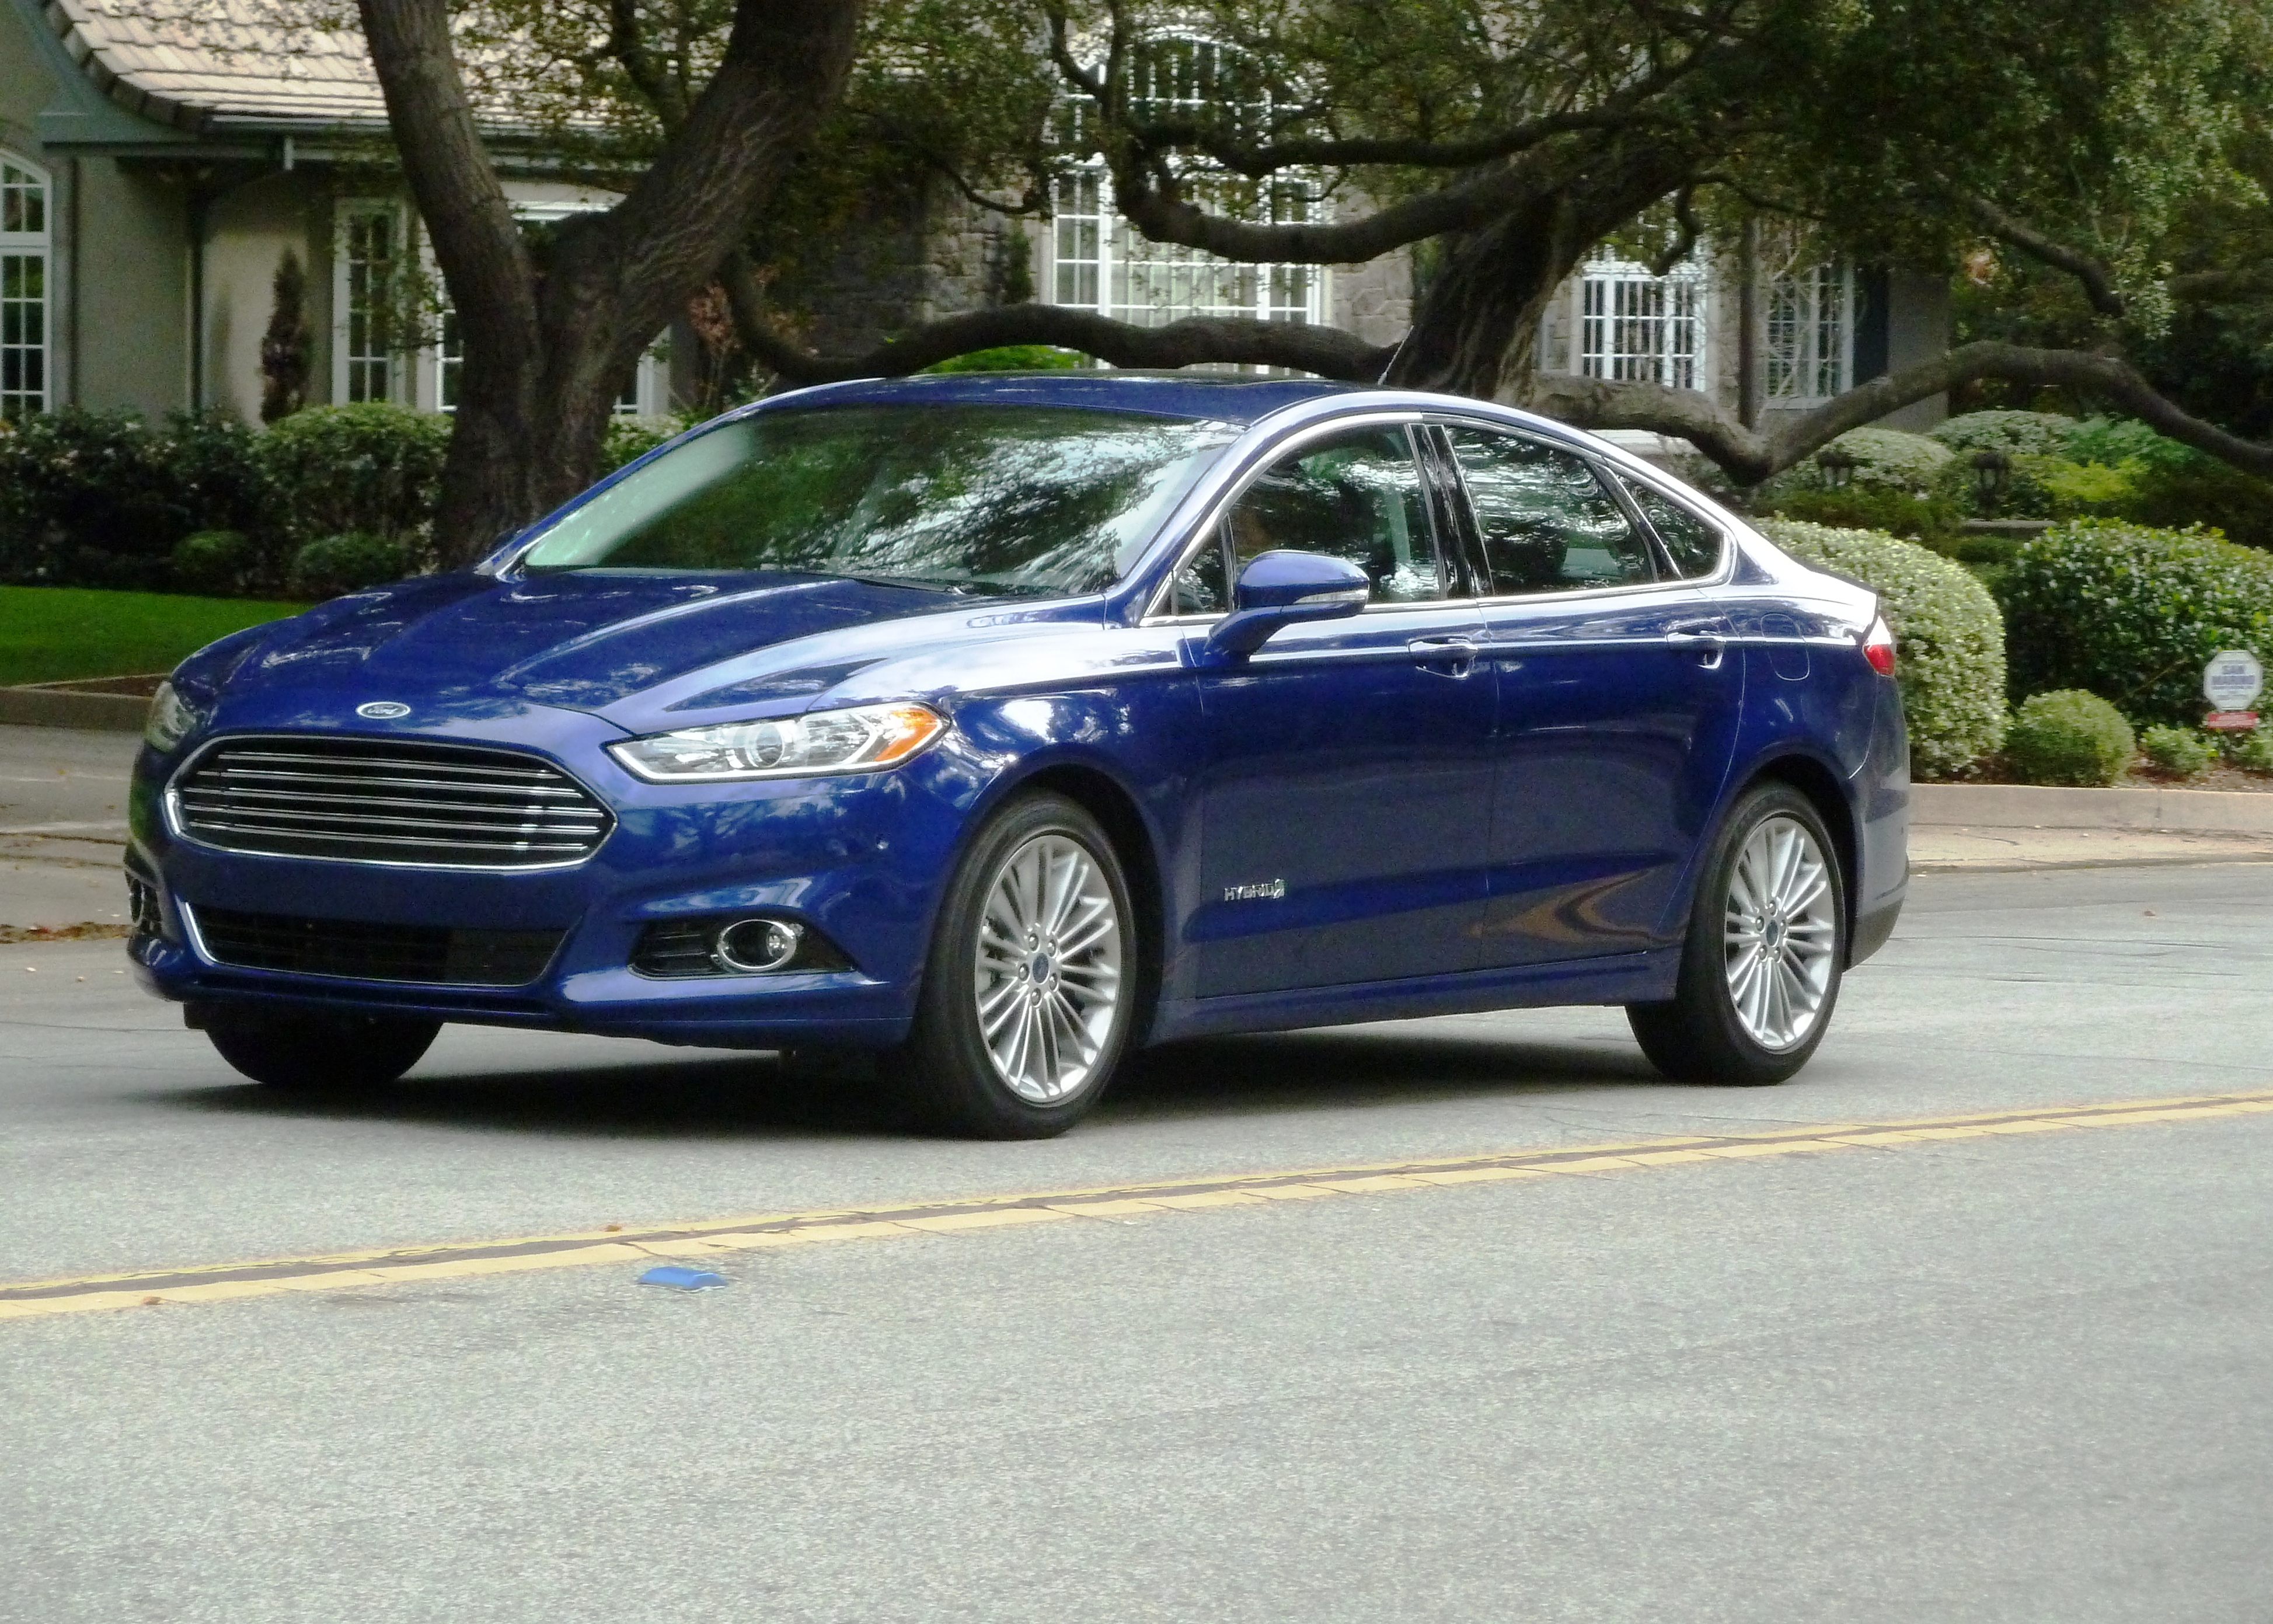 Driven: 2013 Ford Fusion Hybrid